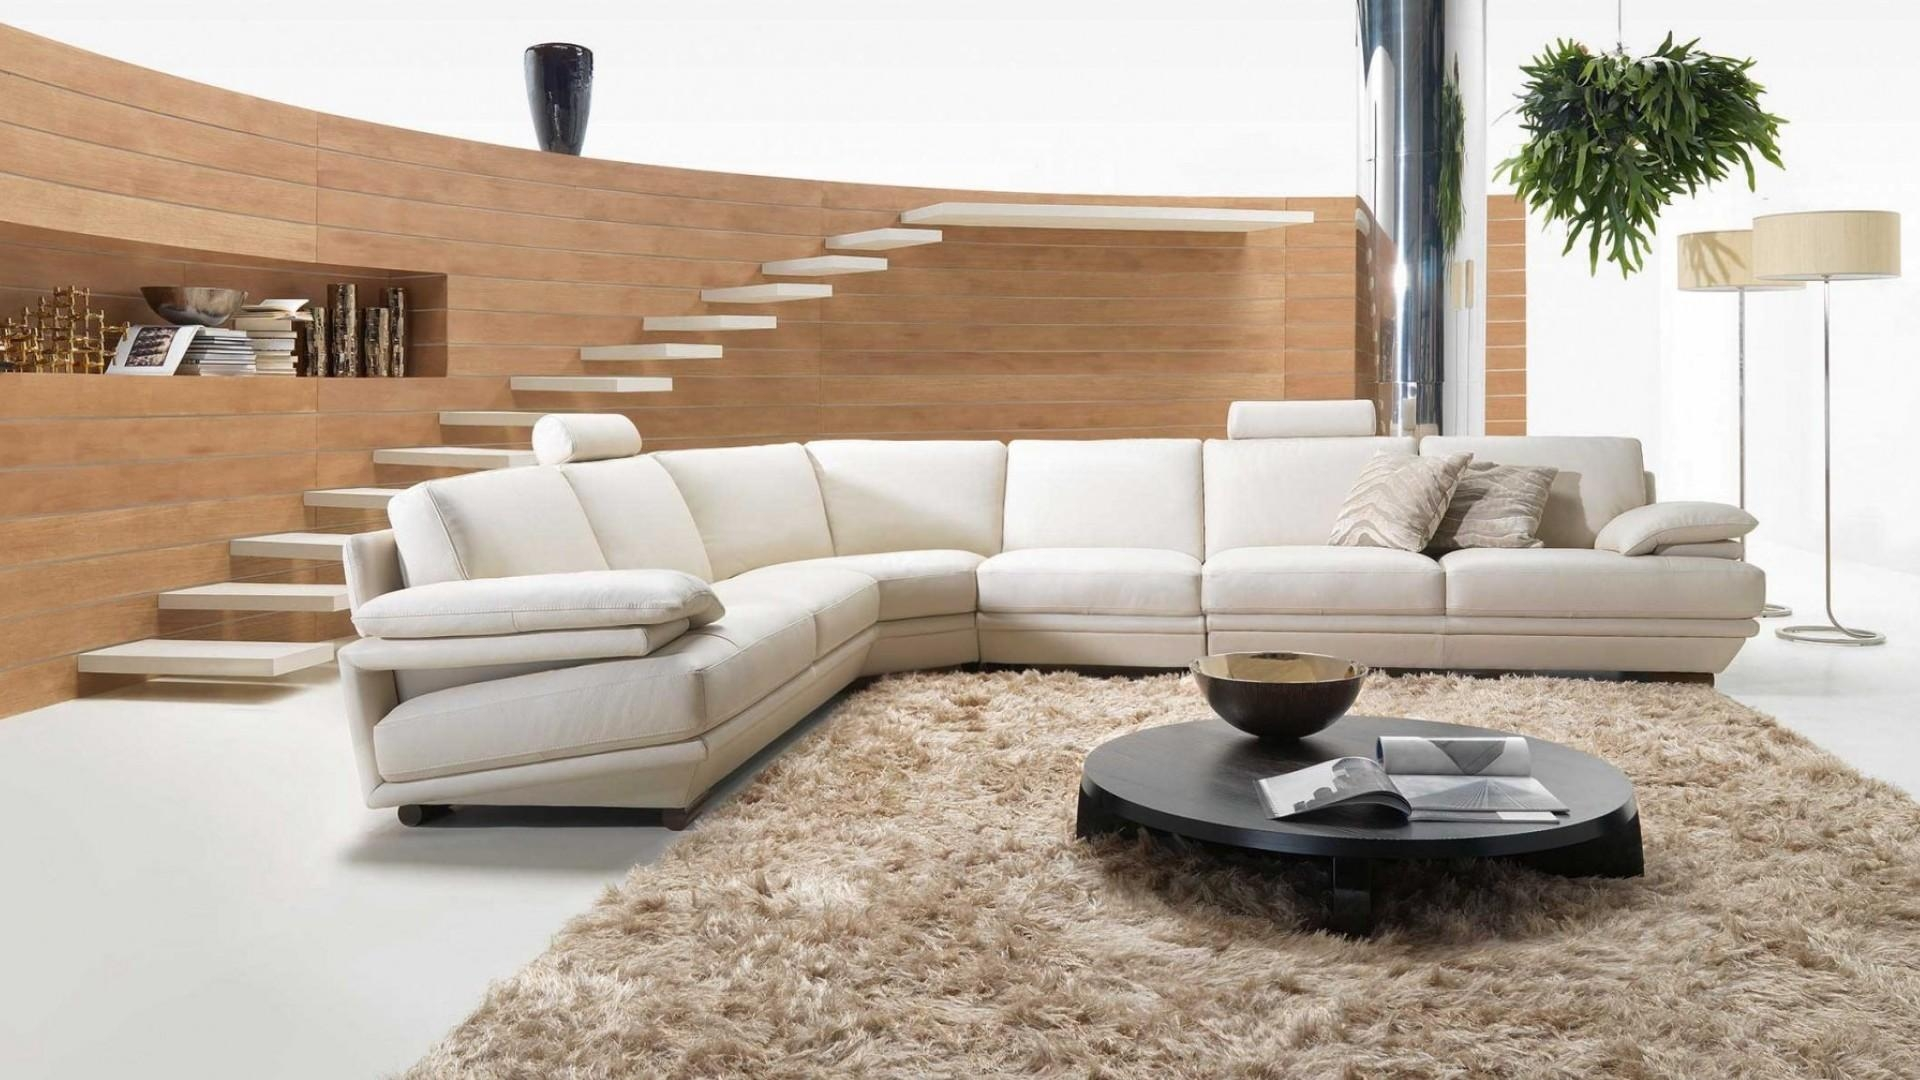 Natuzzi Leather Sofas Ireland | Sofas Decoration throughout Natuzzi Microfiber Sectional Sofas